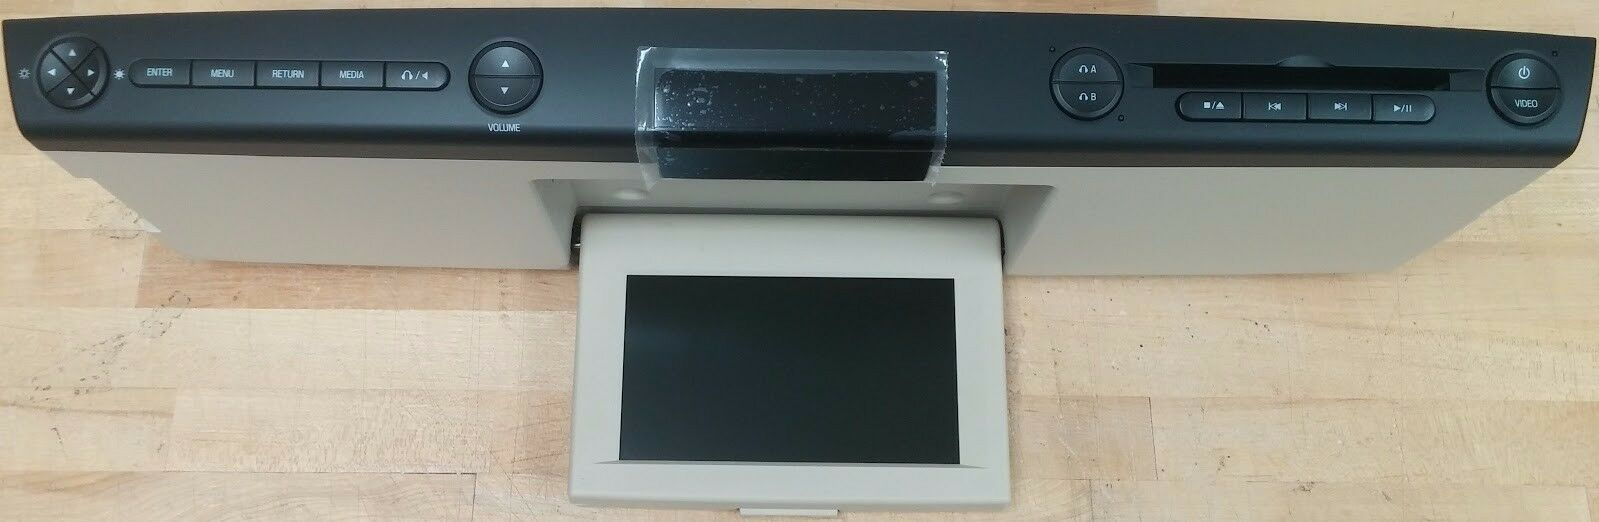 Primary image for Ford overhead video rear entertainment system. DVD and LCD display screen.Md Tan